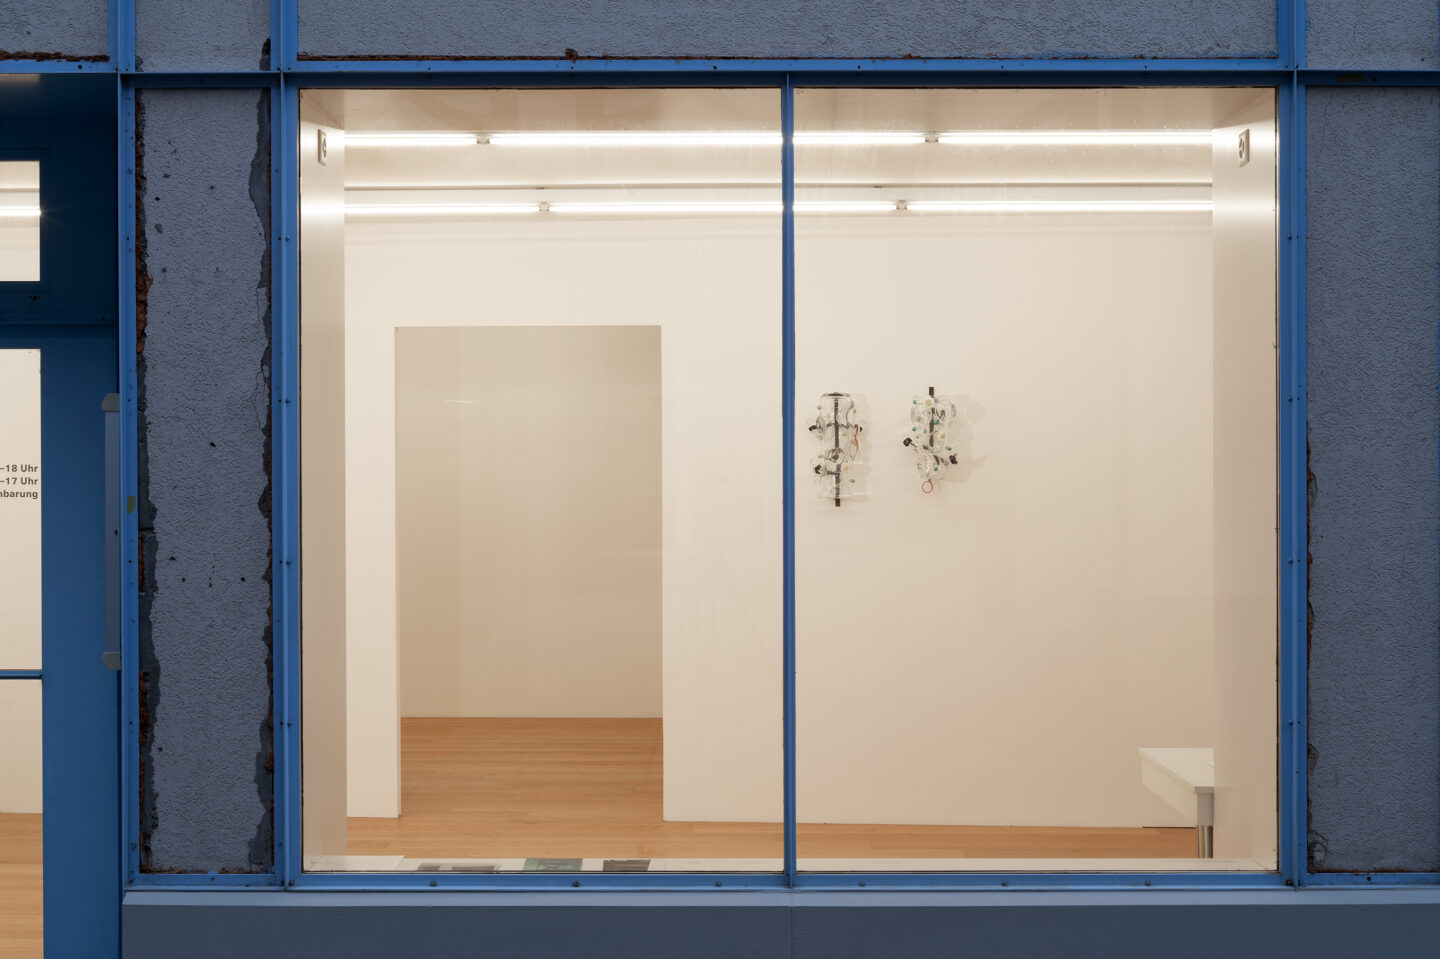 Exhibition View Stefan Burger Soloshow «Baden-Baden» at Kirchgasse, Steckborn, 2020 / Courtesy: the artist and Kirchgasse